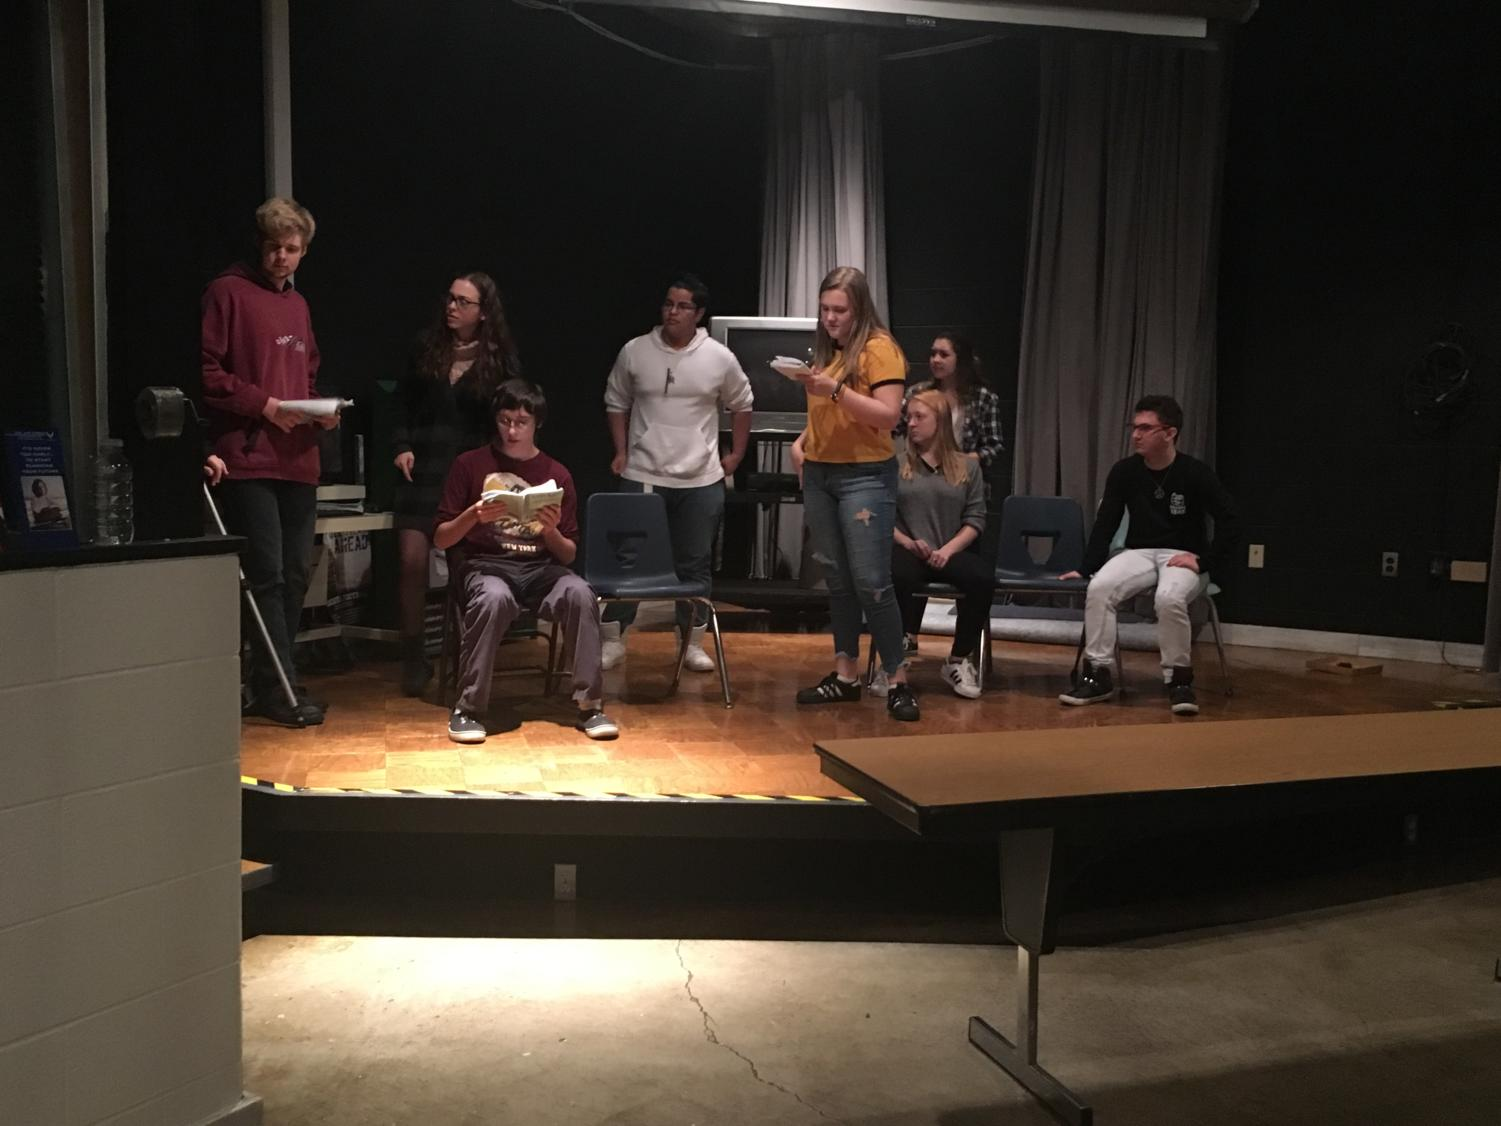 Drama club cast members rehearse their lines for upcoming play, Farce of Nature.